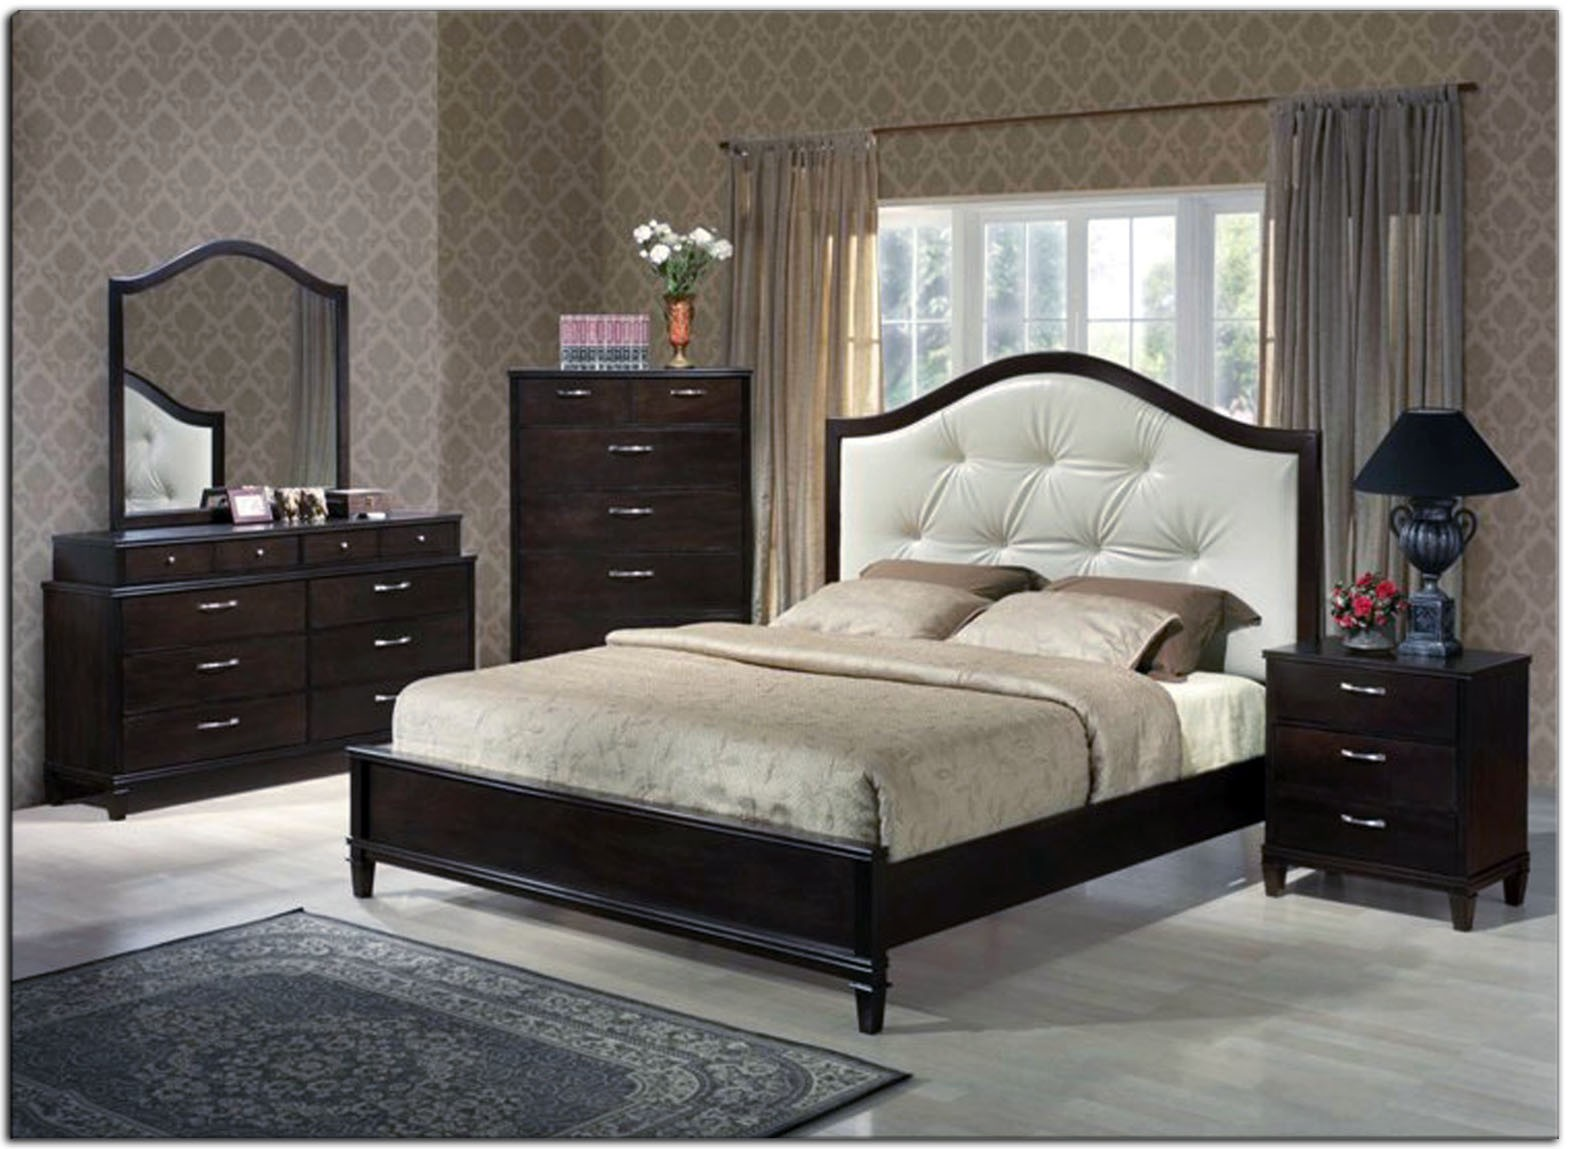 black leather bedroom furniture photo - 4